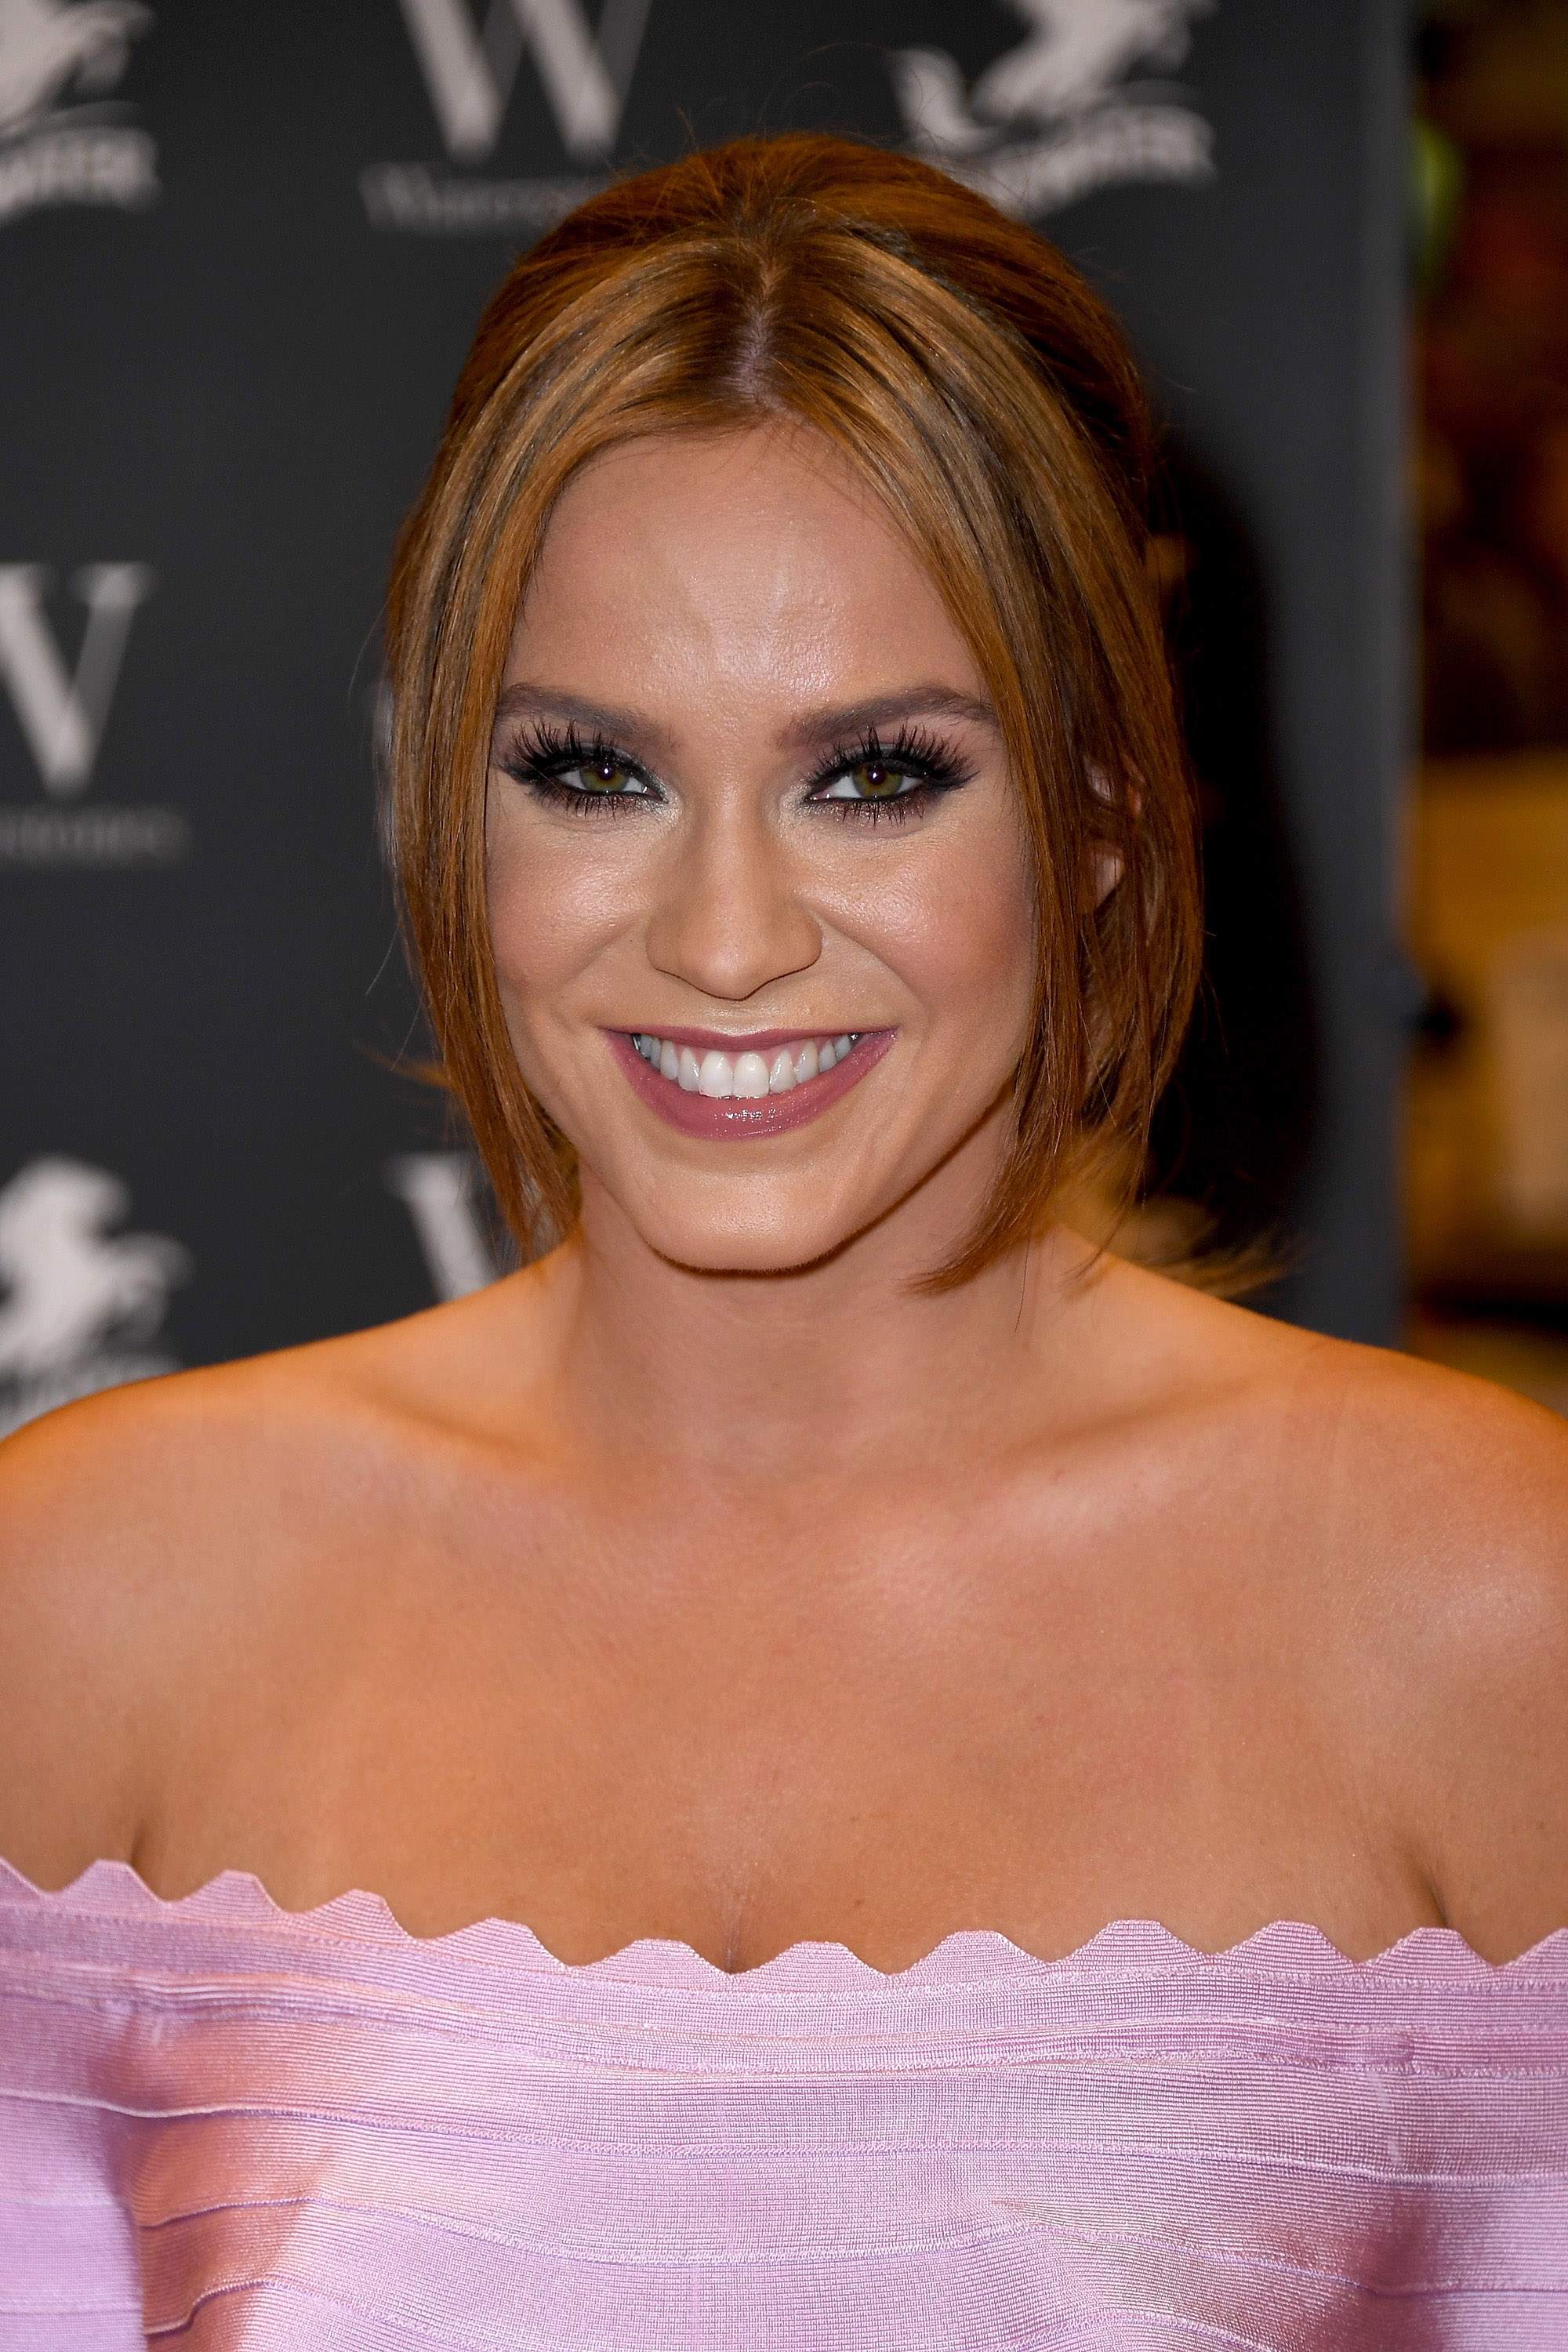 Vicky Pattison Signs Copies Of Her Book 'The Real